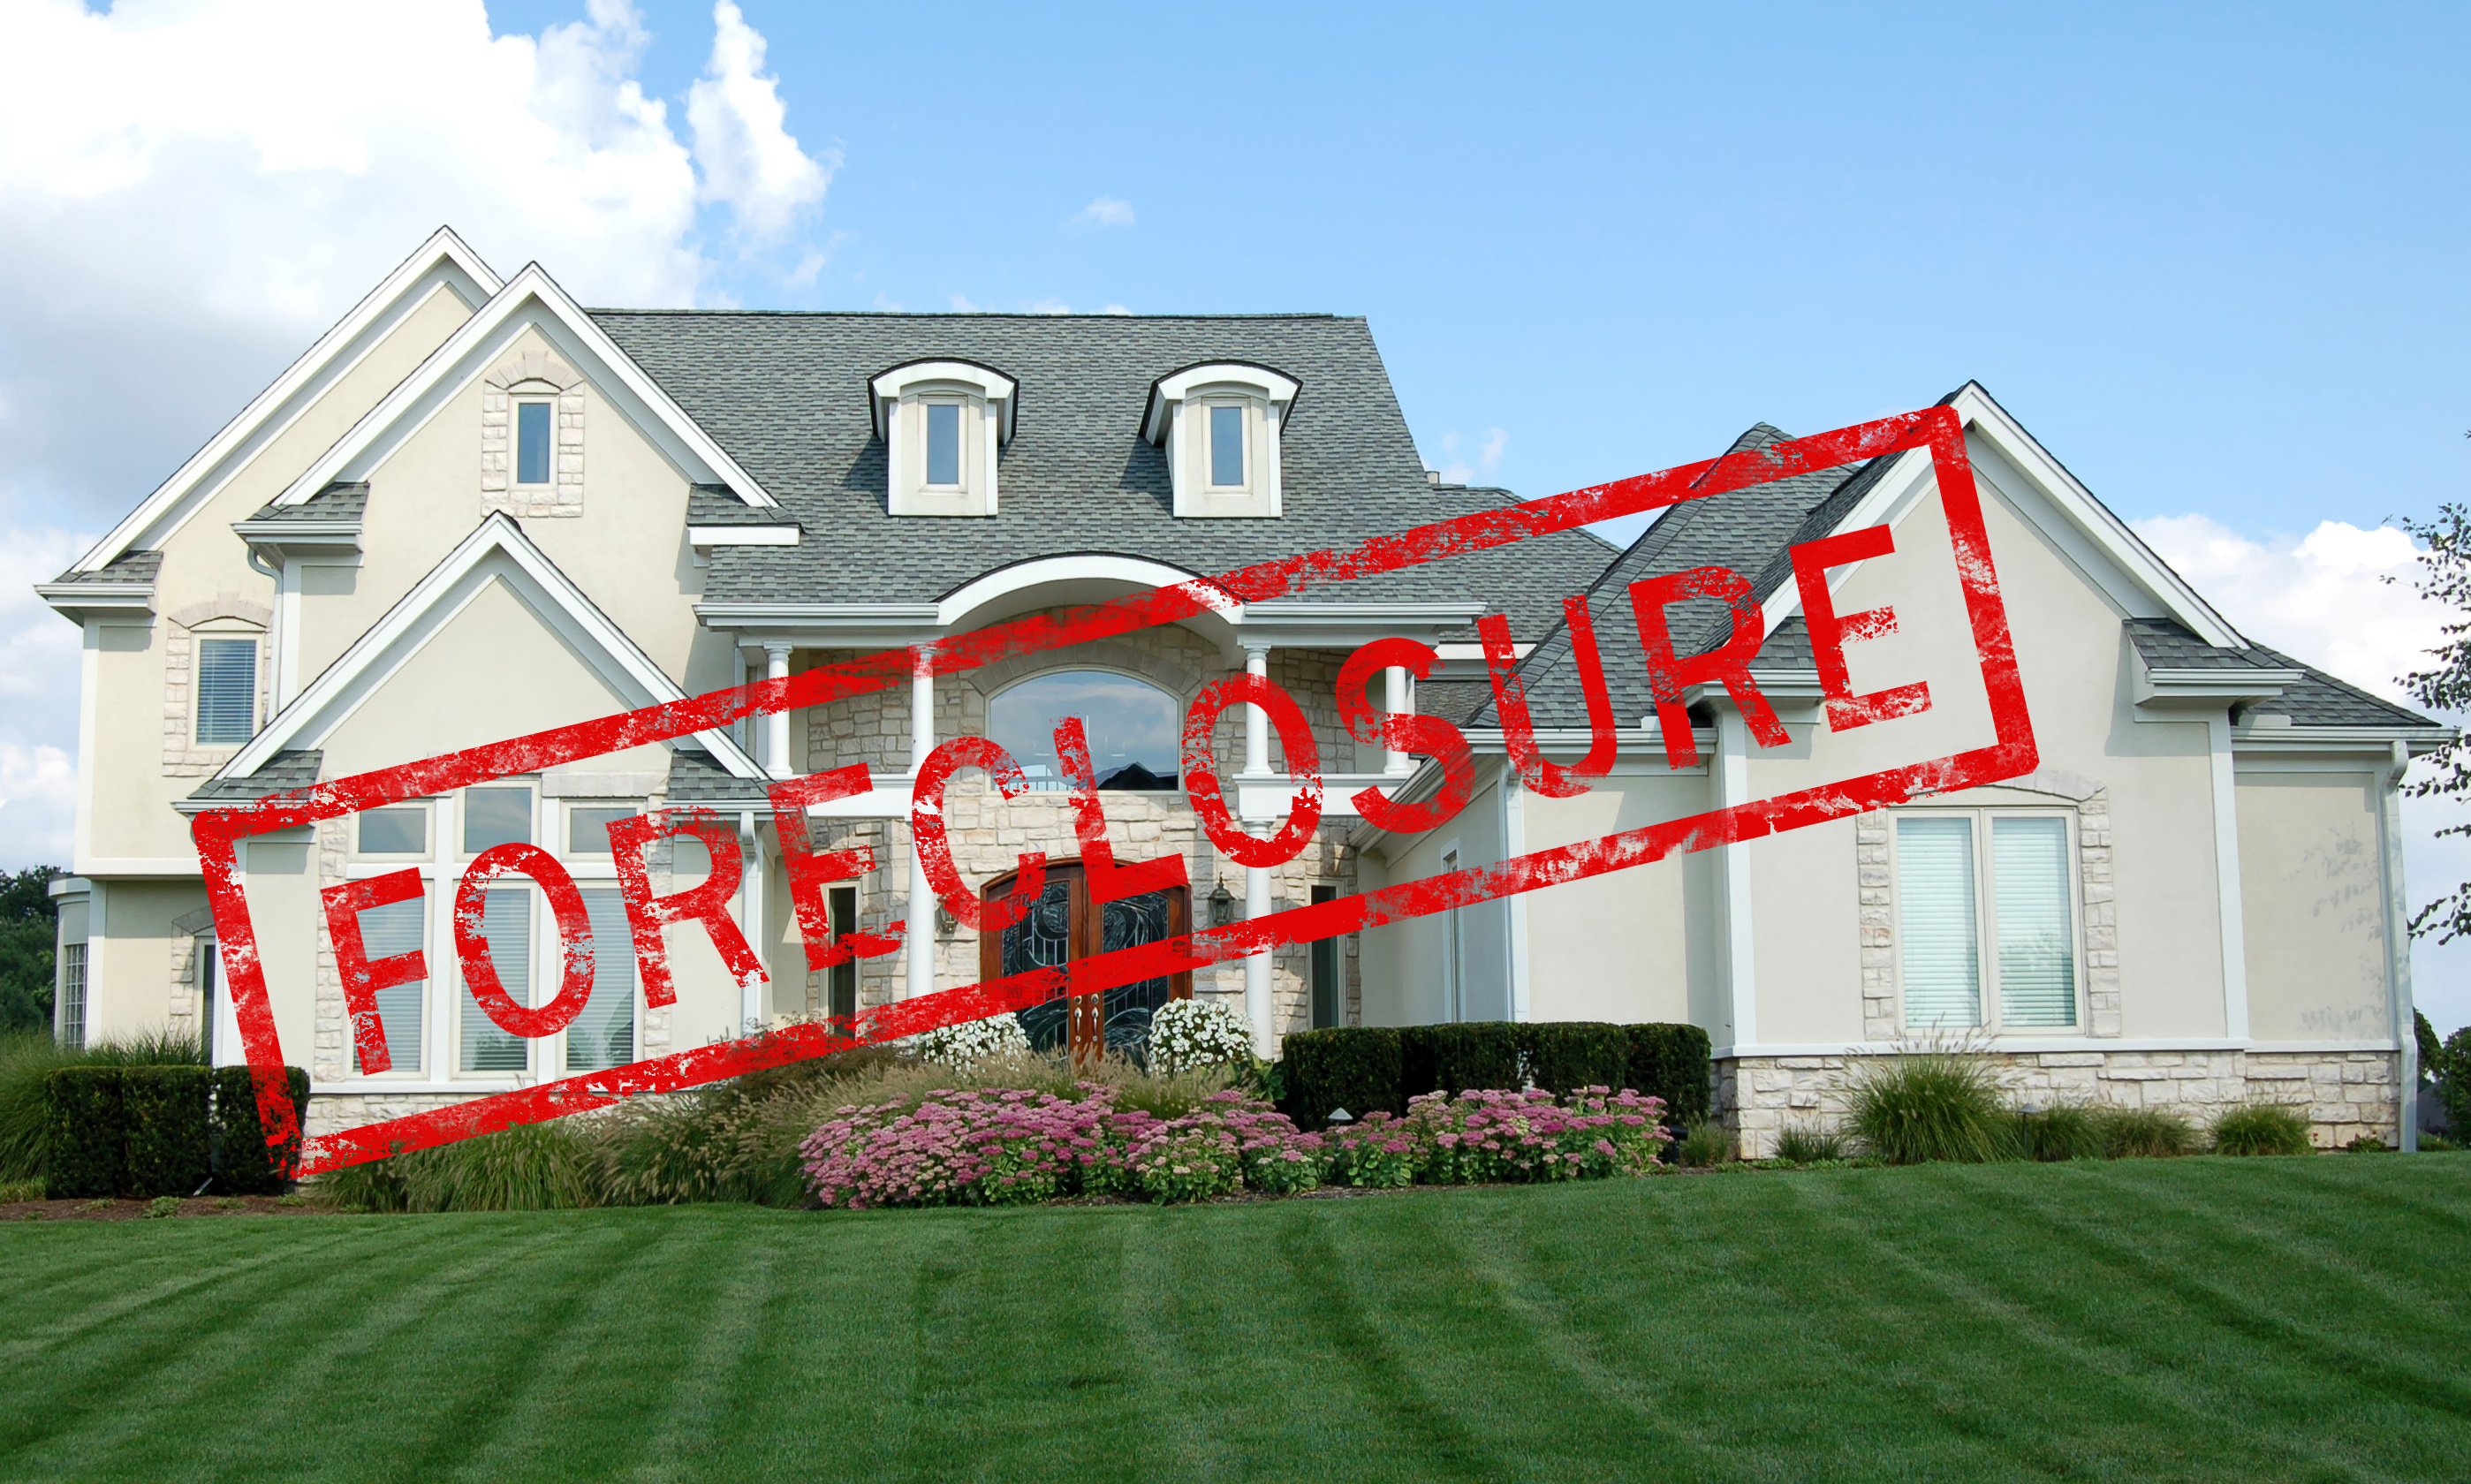 Call Barnes Appraisal Company to order valuations regarding Comanche foreclosures